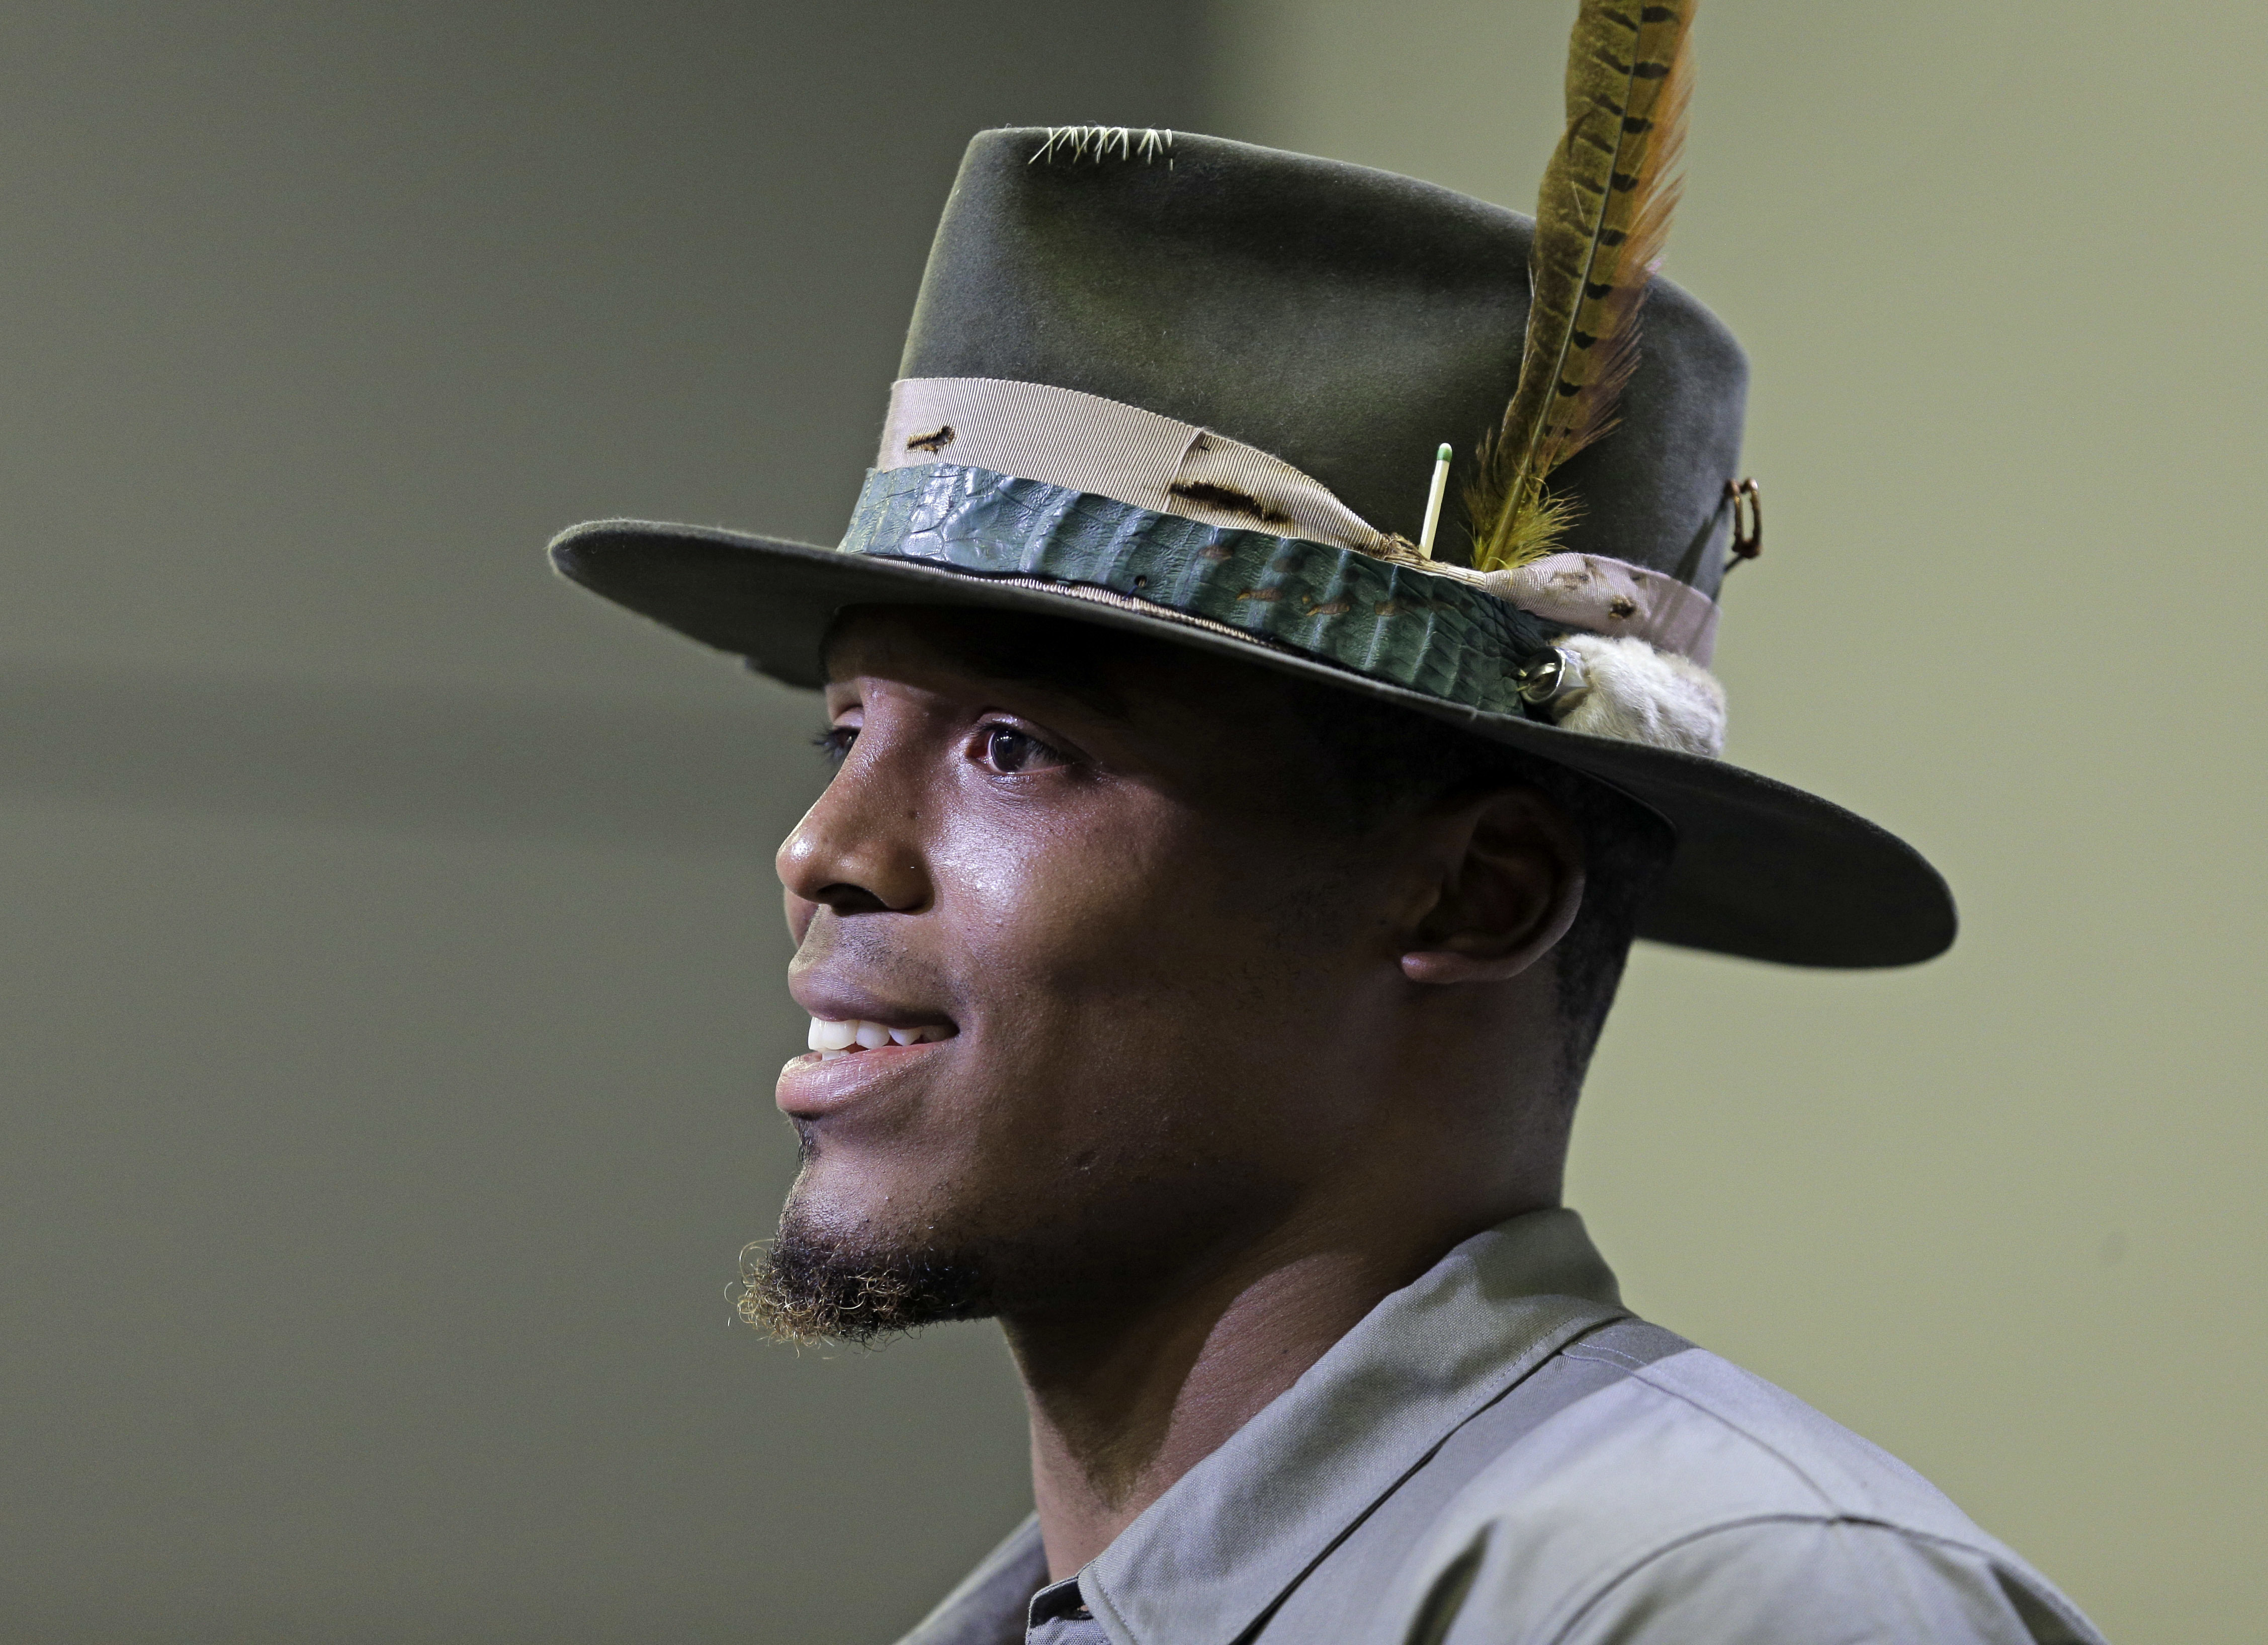 Carolina Panthers' Cam Newton speaks to the media during a news conference in Charlotte, N.C., Wednesday, Nov. 2, 2016. Newton spoke briefly about meeting with NFL commissioner Roger Goodell after complaining that he didn't feel officials were protecting